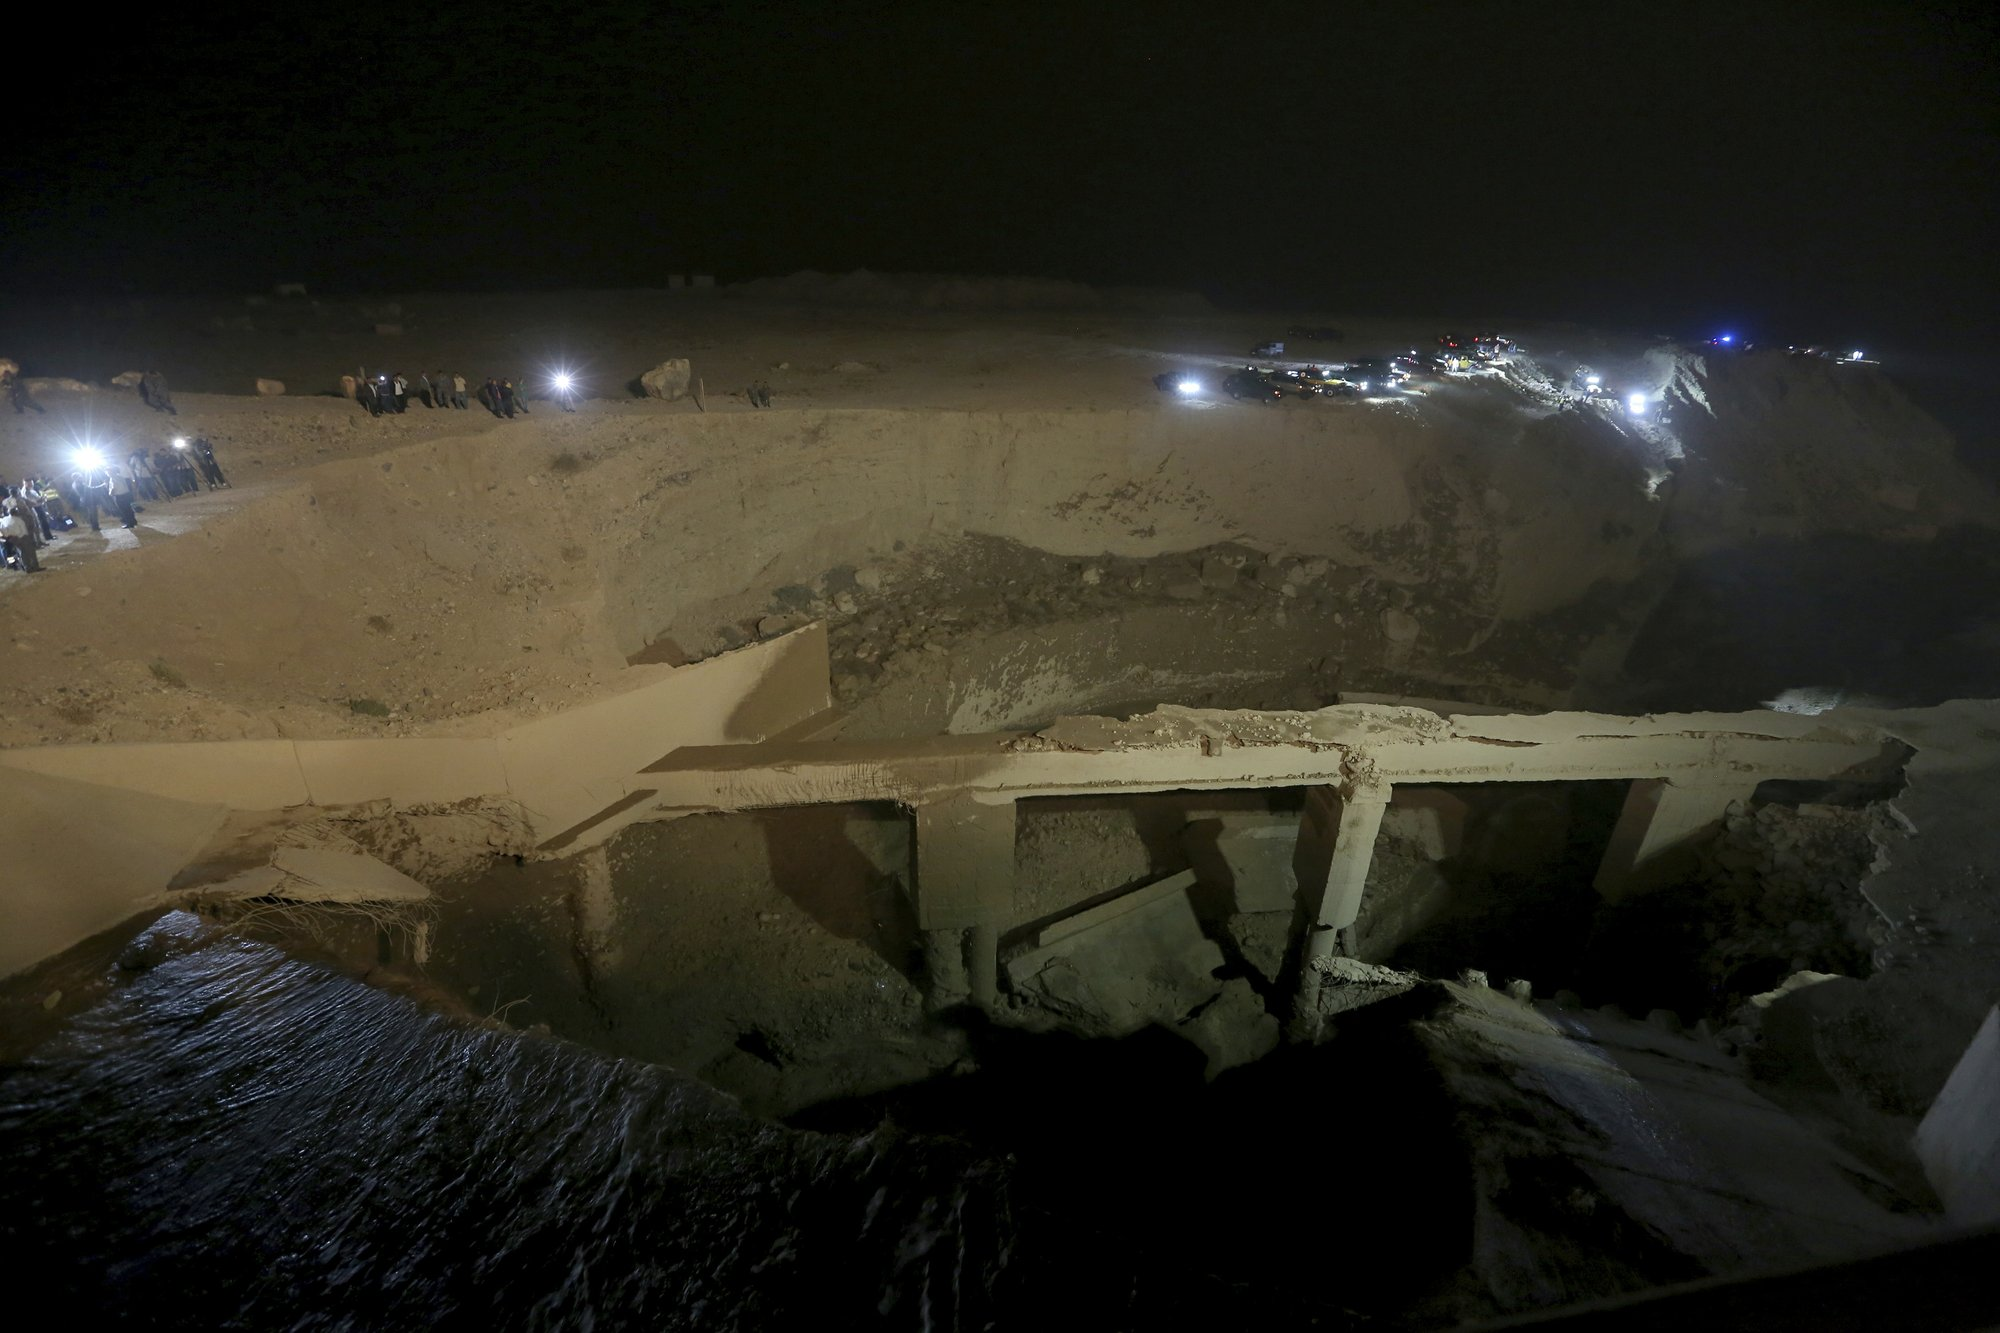 A general view shows the location of the accident where people were killed in a flash flood near the Dead Sea, Jordan, on Thursday, Oct. 25, 2018.  Photo: AP